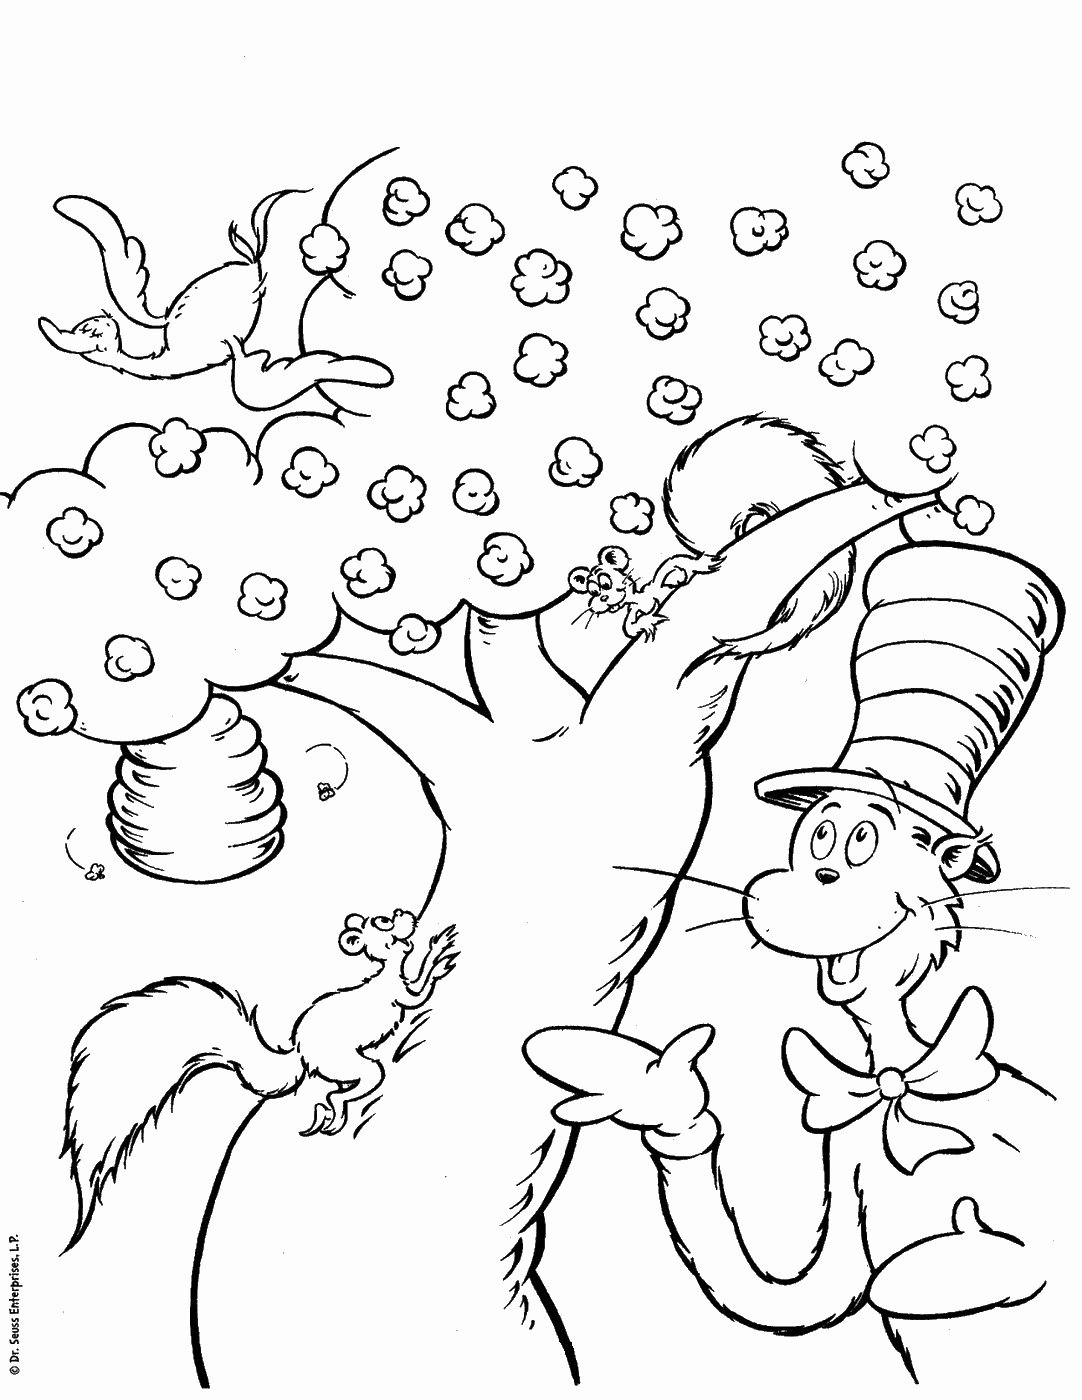 Cat In the Hat Worksheets for Preschoolers Ideas Cat In the Hat Coloring Pages – Coloringcks